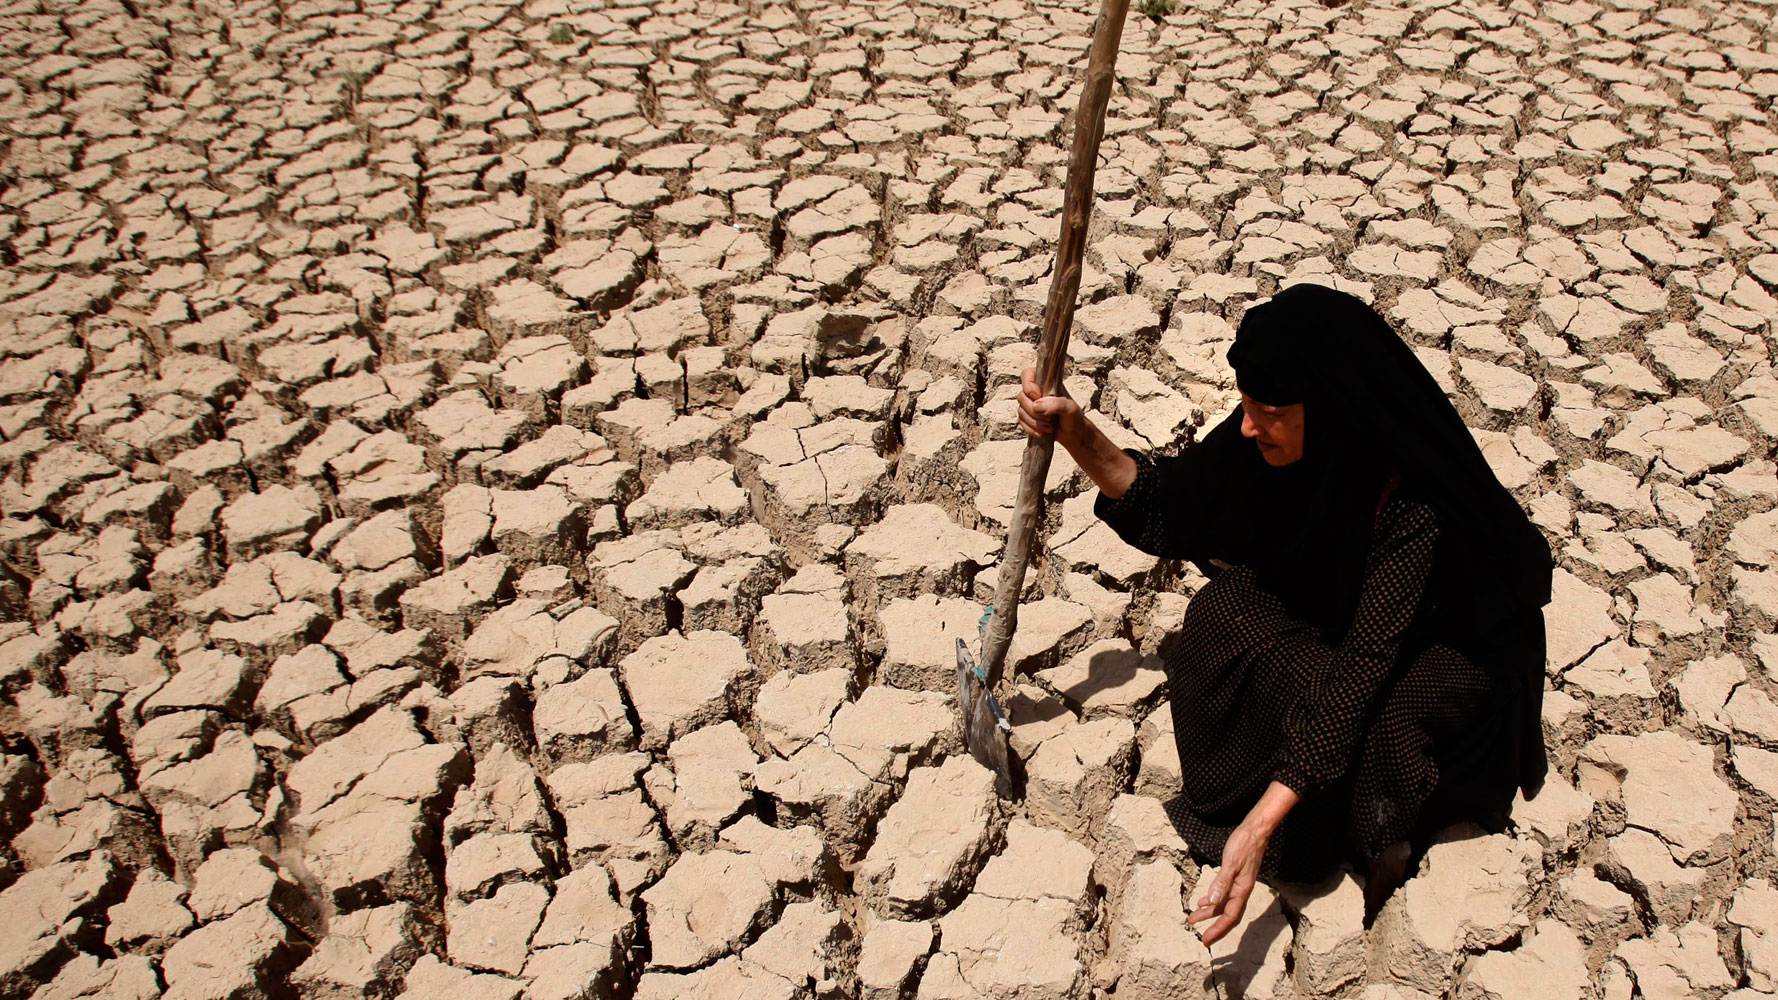 Citizens living in Iran are mostly affected by the water crisis